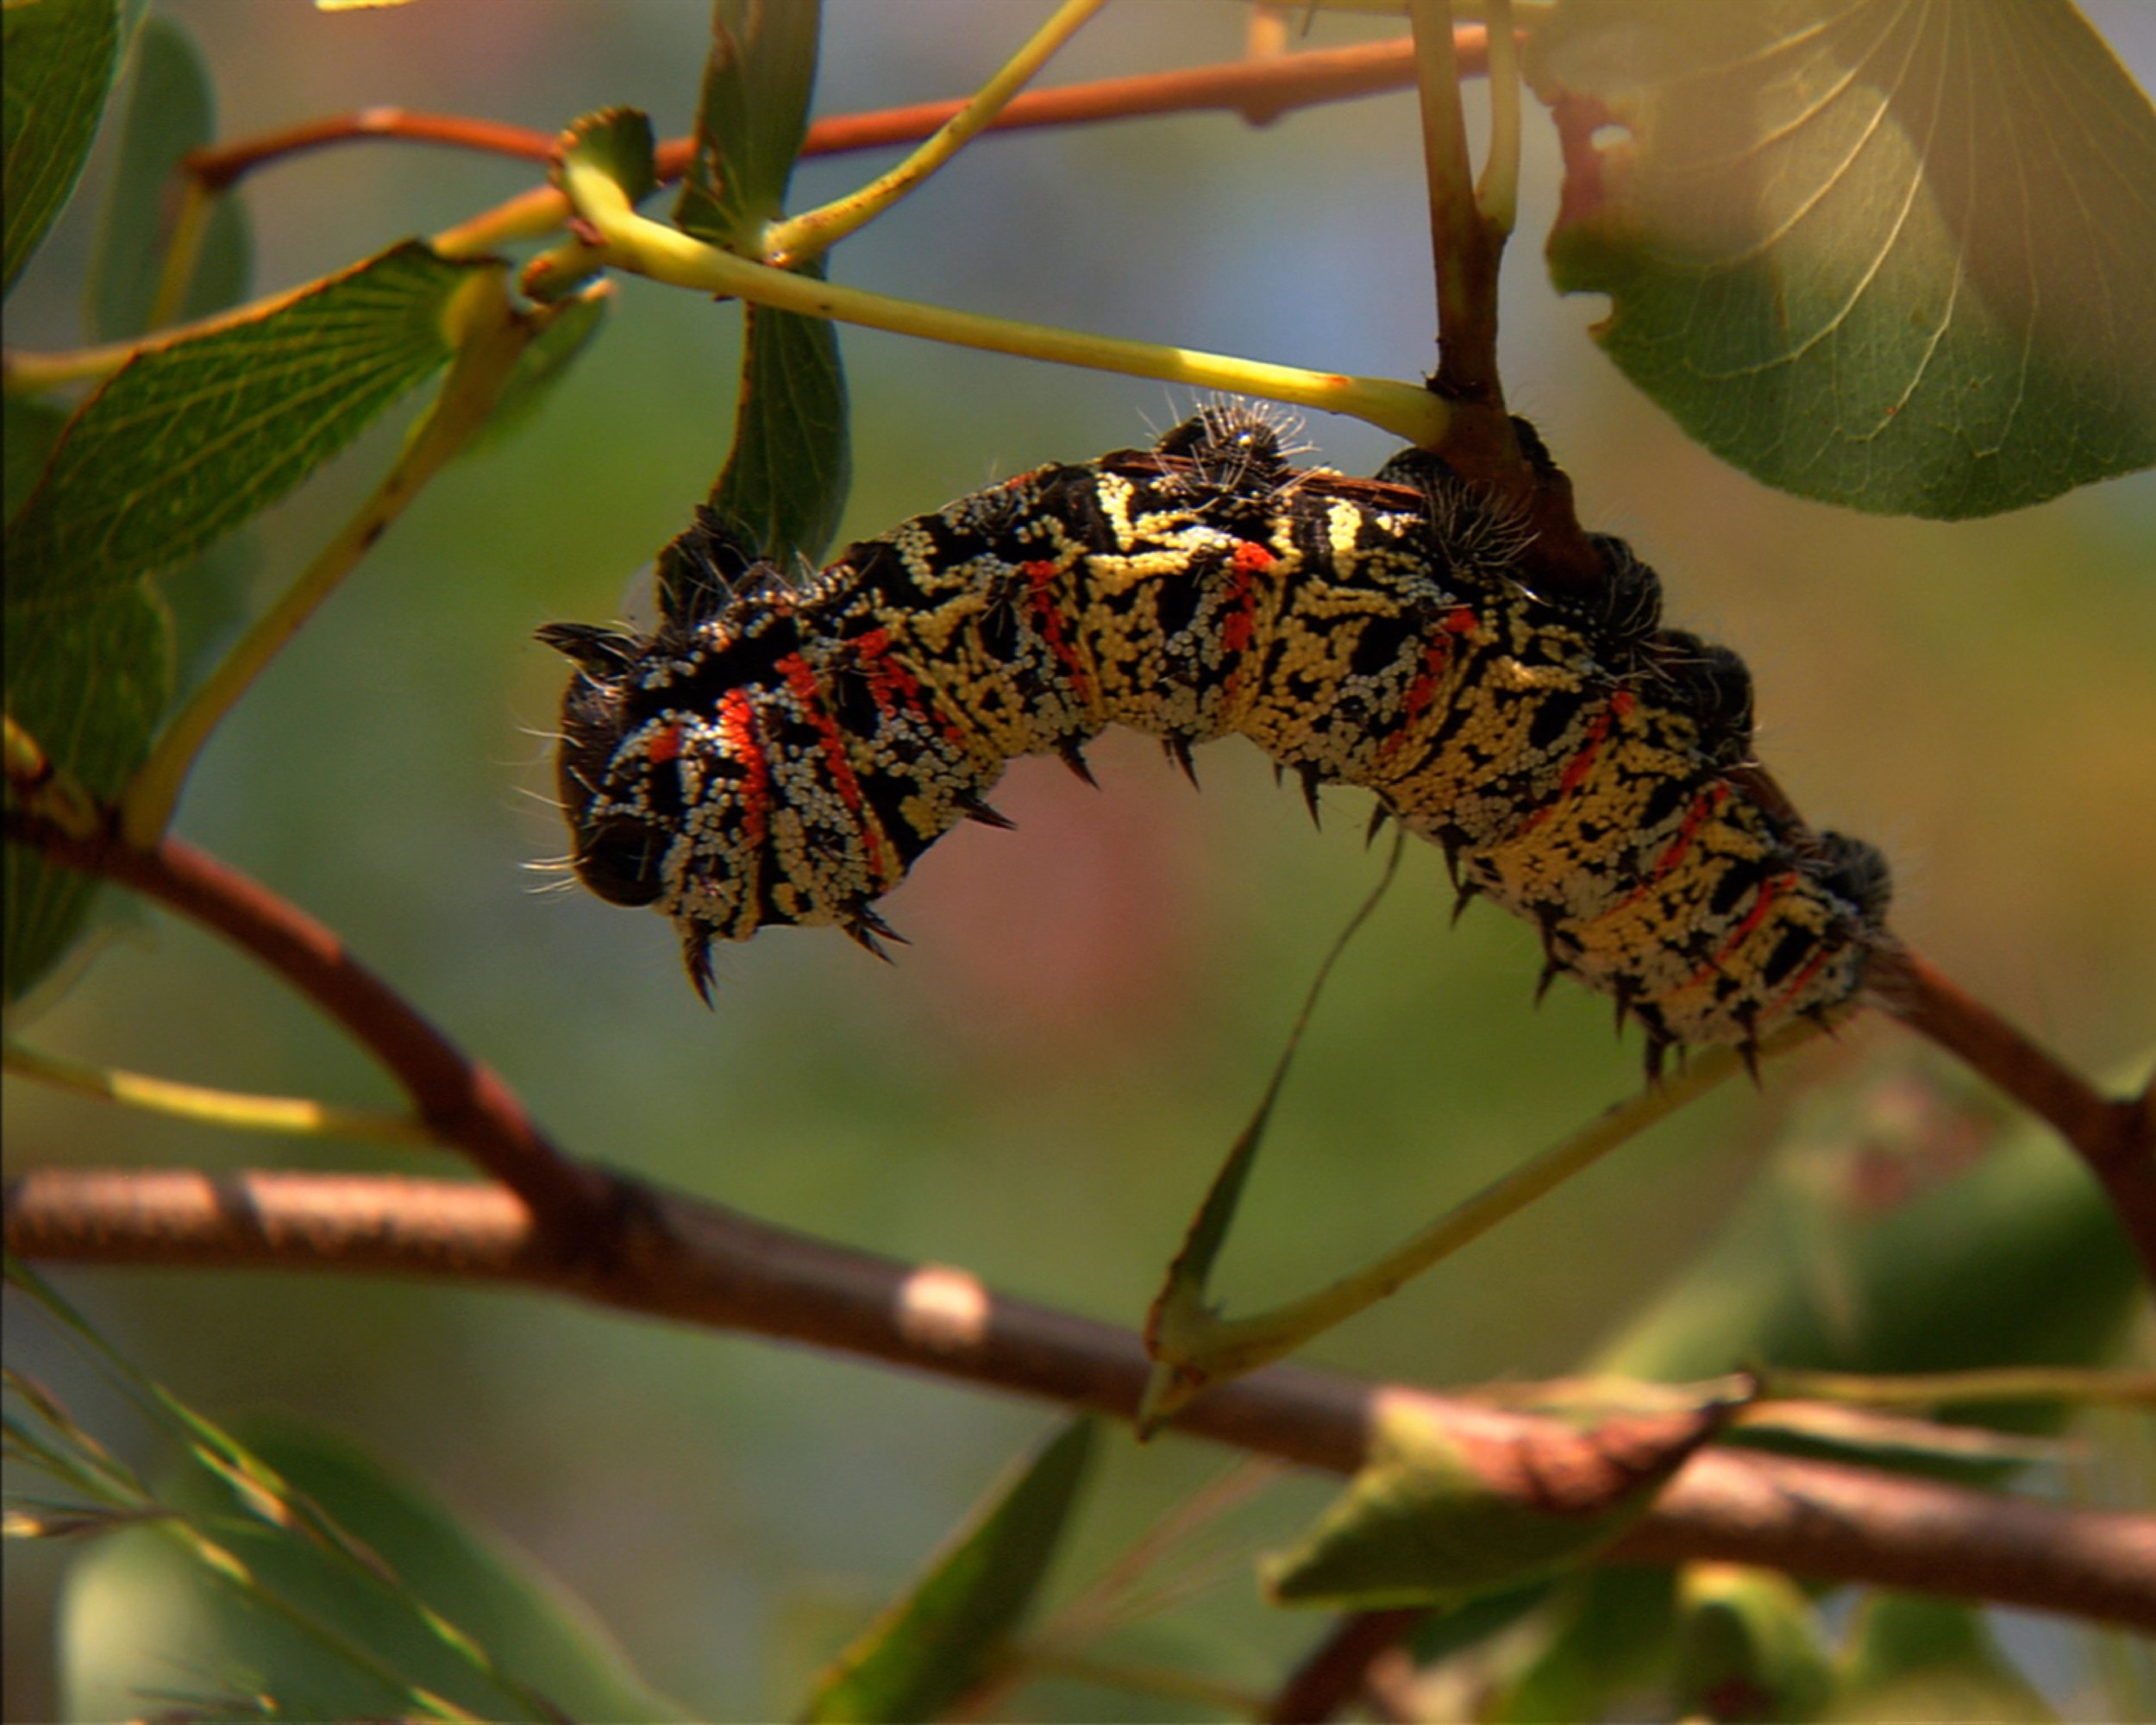 Bugs on the Menu 04 - A mopane caterpillar is plucked from a tree in South Africa, where it is harvested for human food.jpg